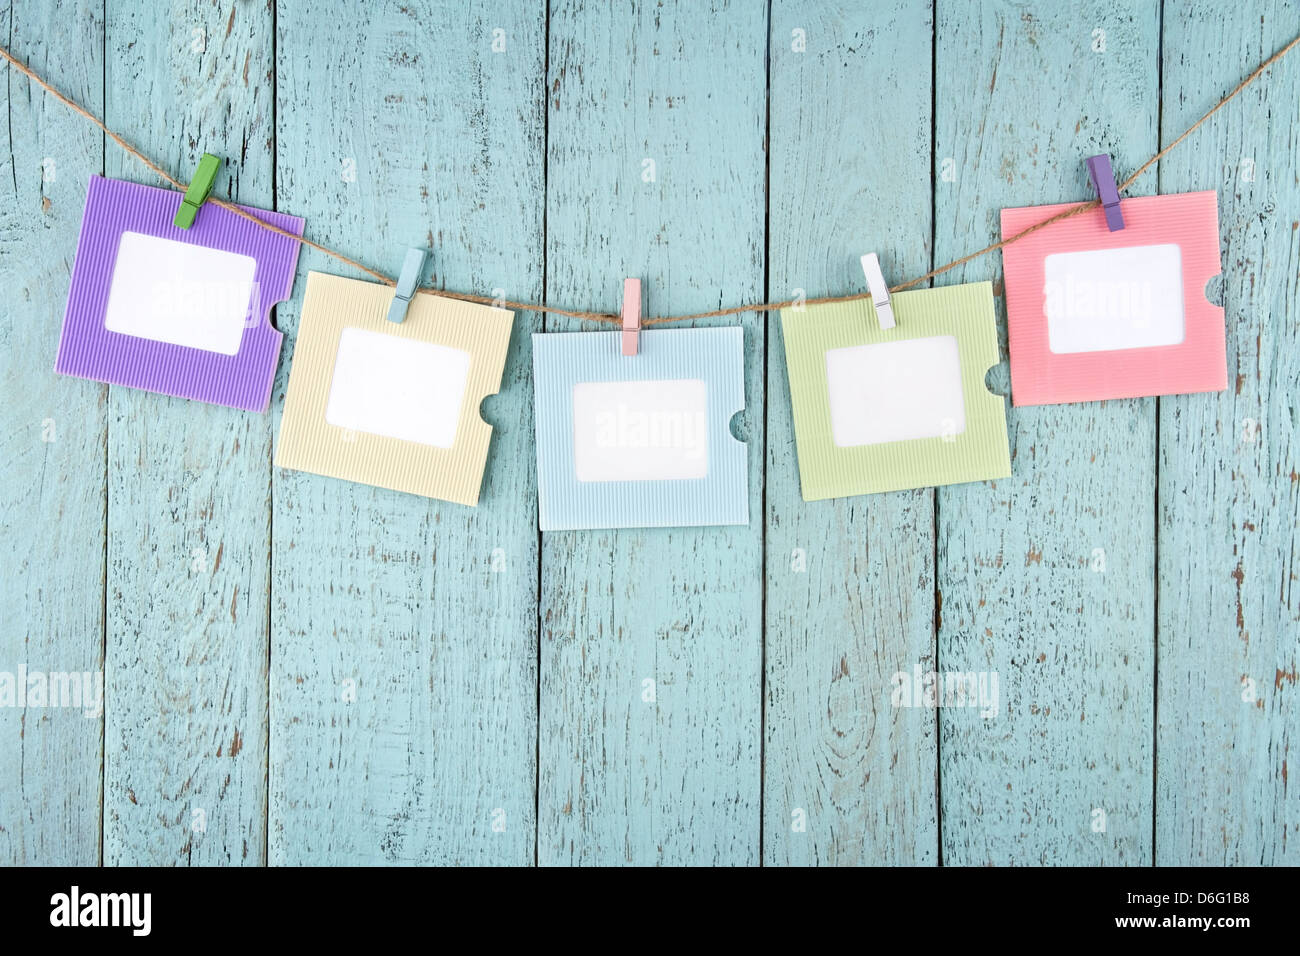 Five empty colorful photo frames or notes paper hanging with clothespins on wooden blue vintage shabby chic background - Stock Image